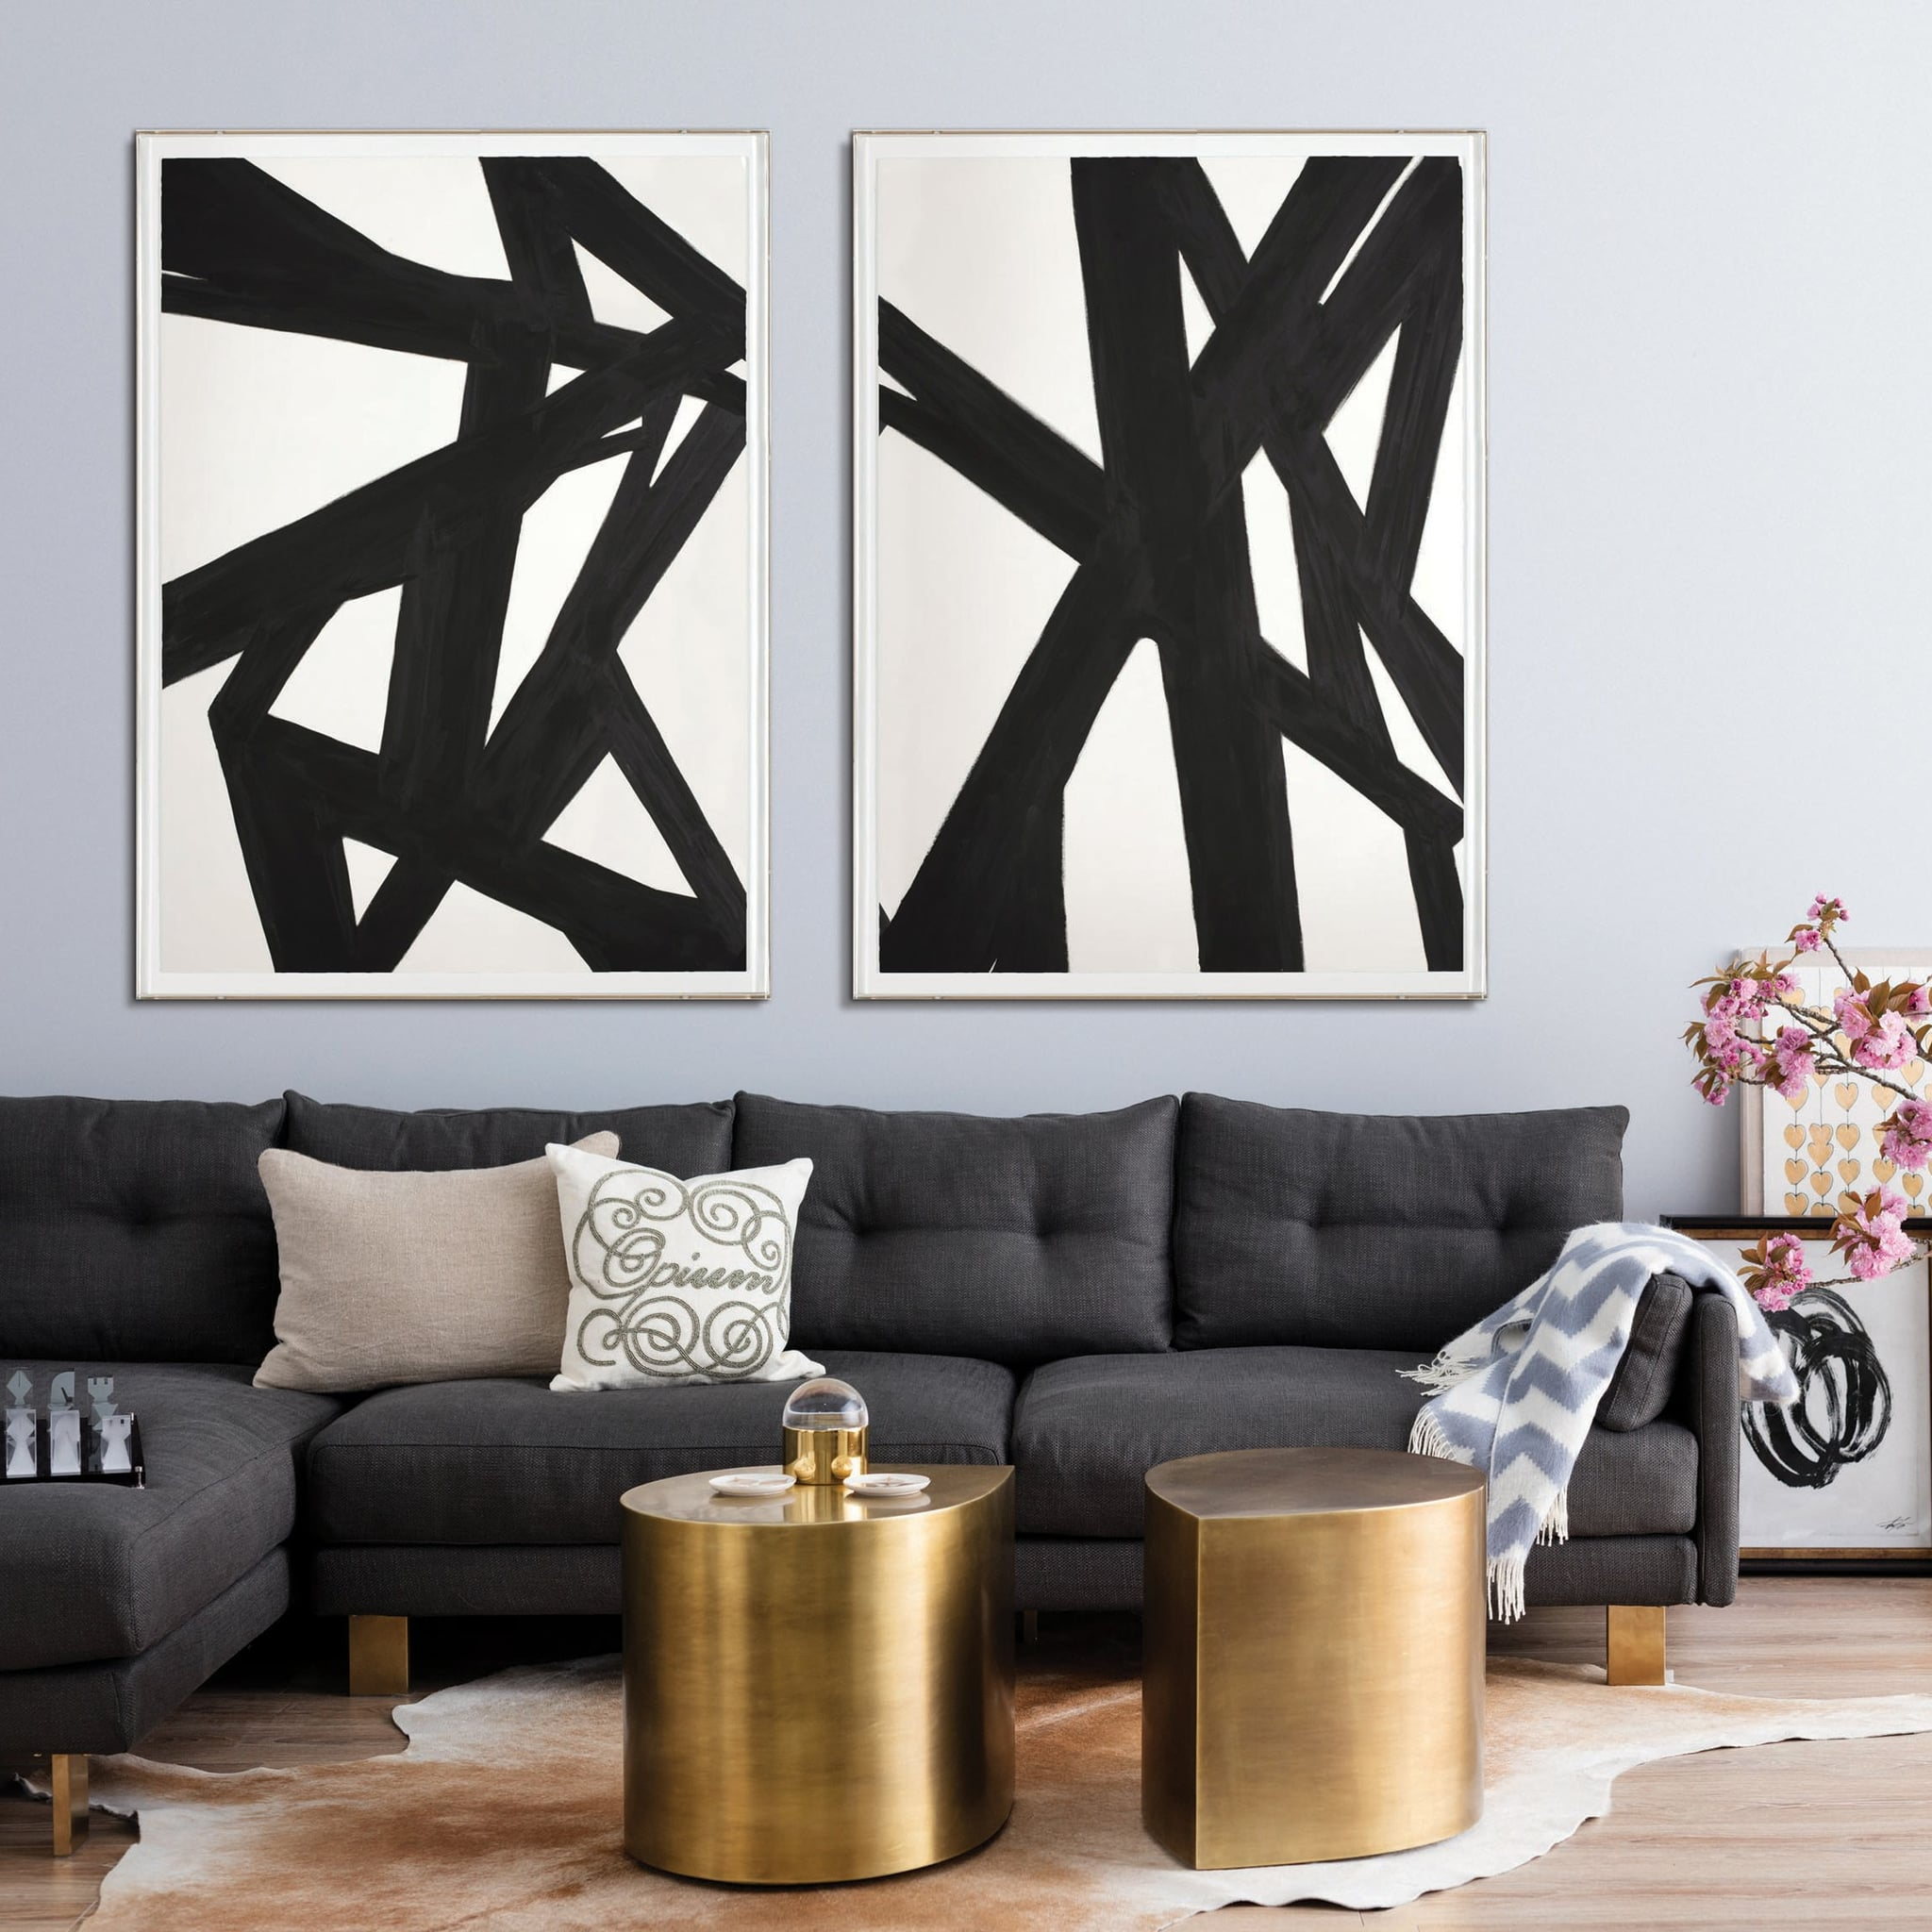 How To Match Art To Different Home Decorating Styles Popsugar